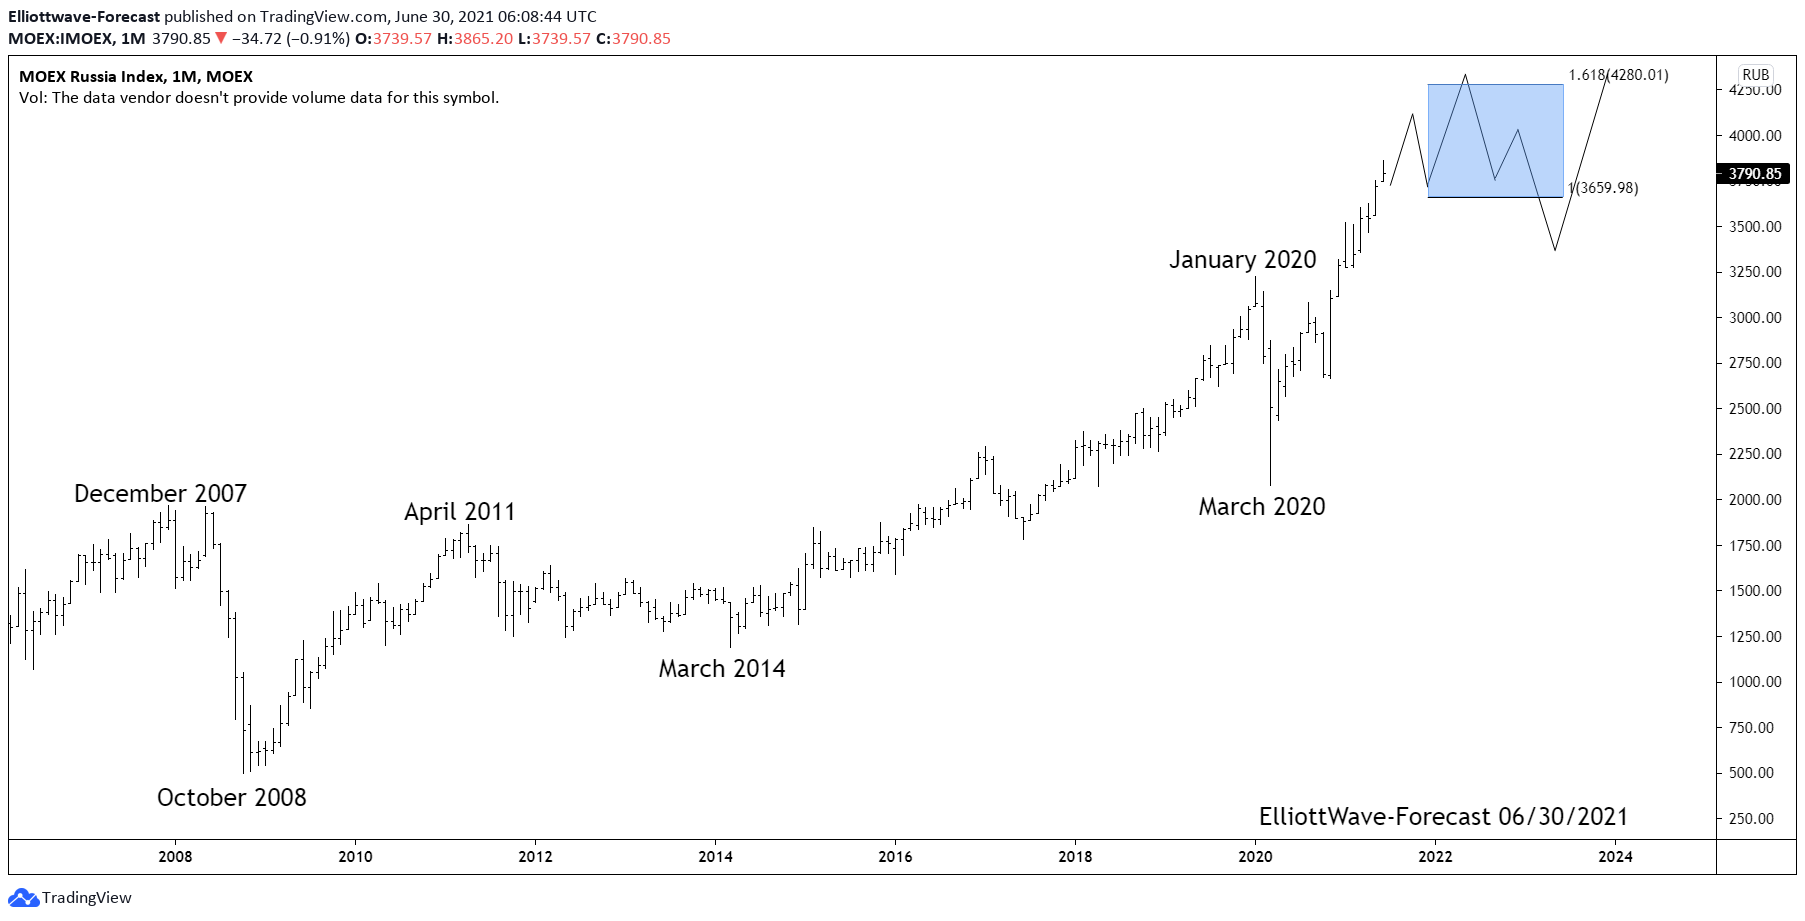 MOEX Russian Index Bull Trend and Longer Term Cycles